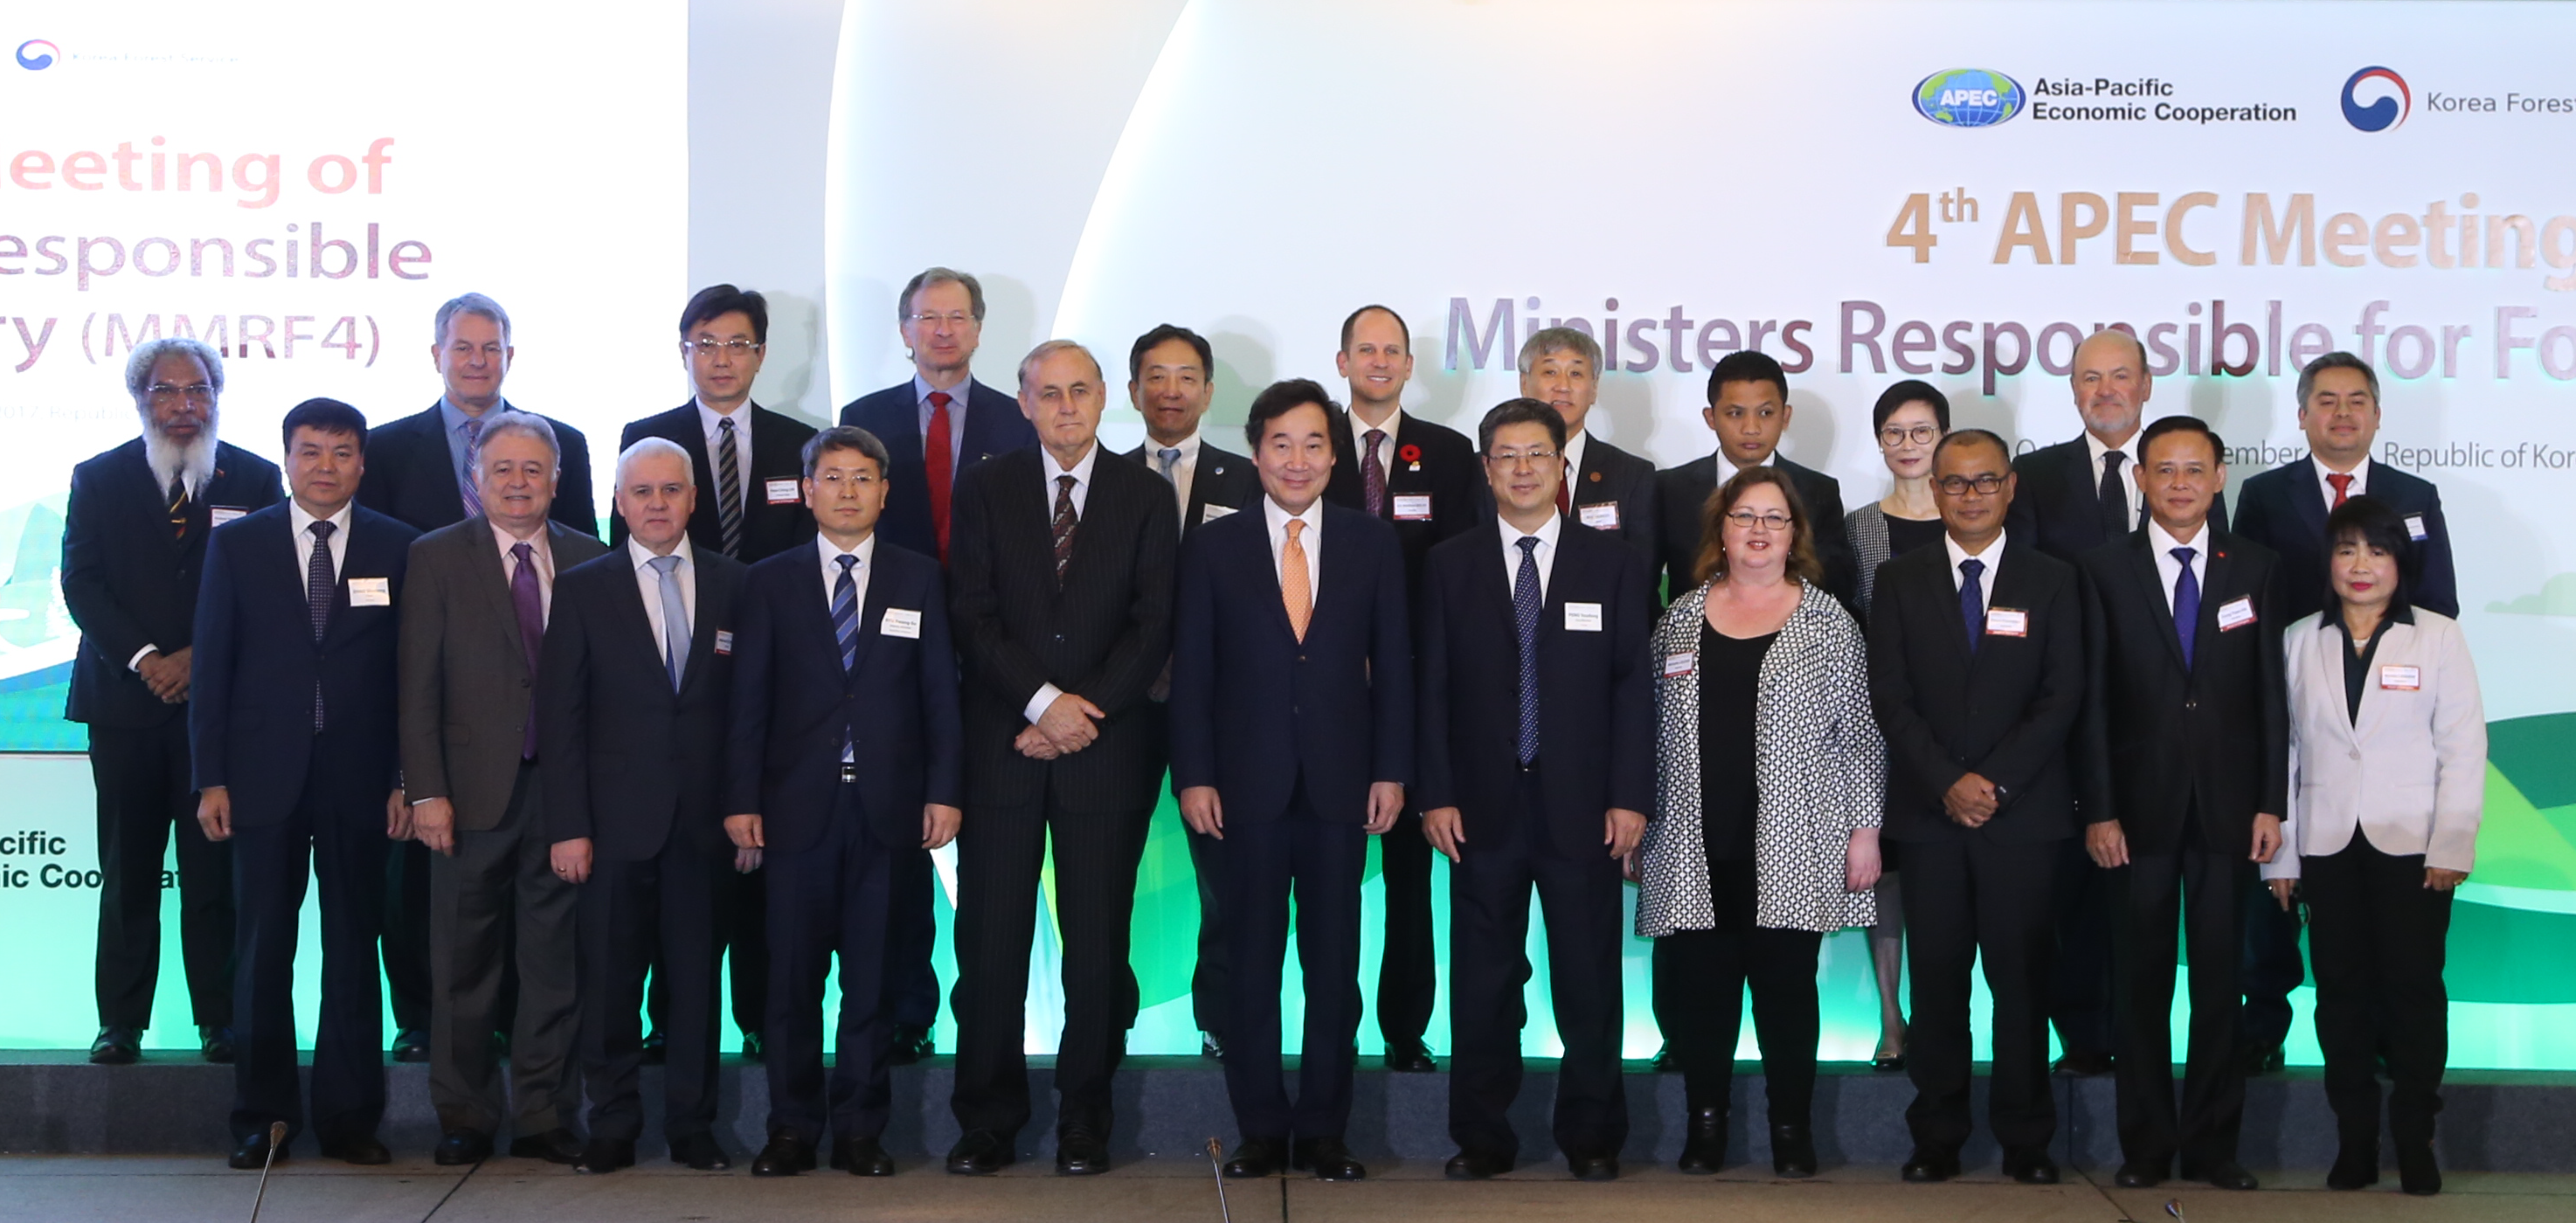 APEC Meeting of Ministers Responsible for Forestry 이미지